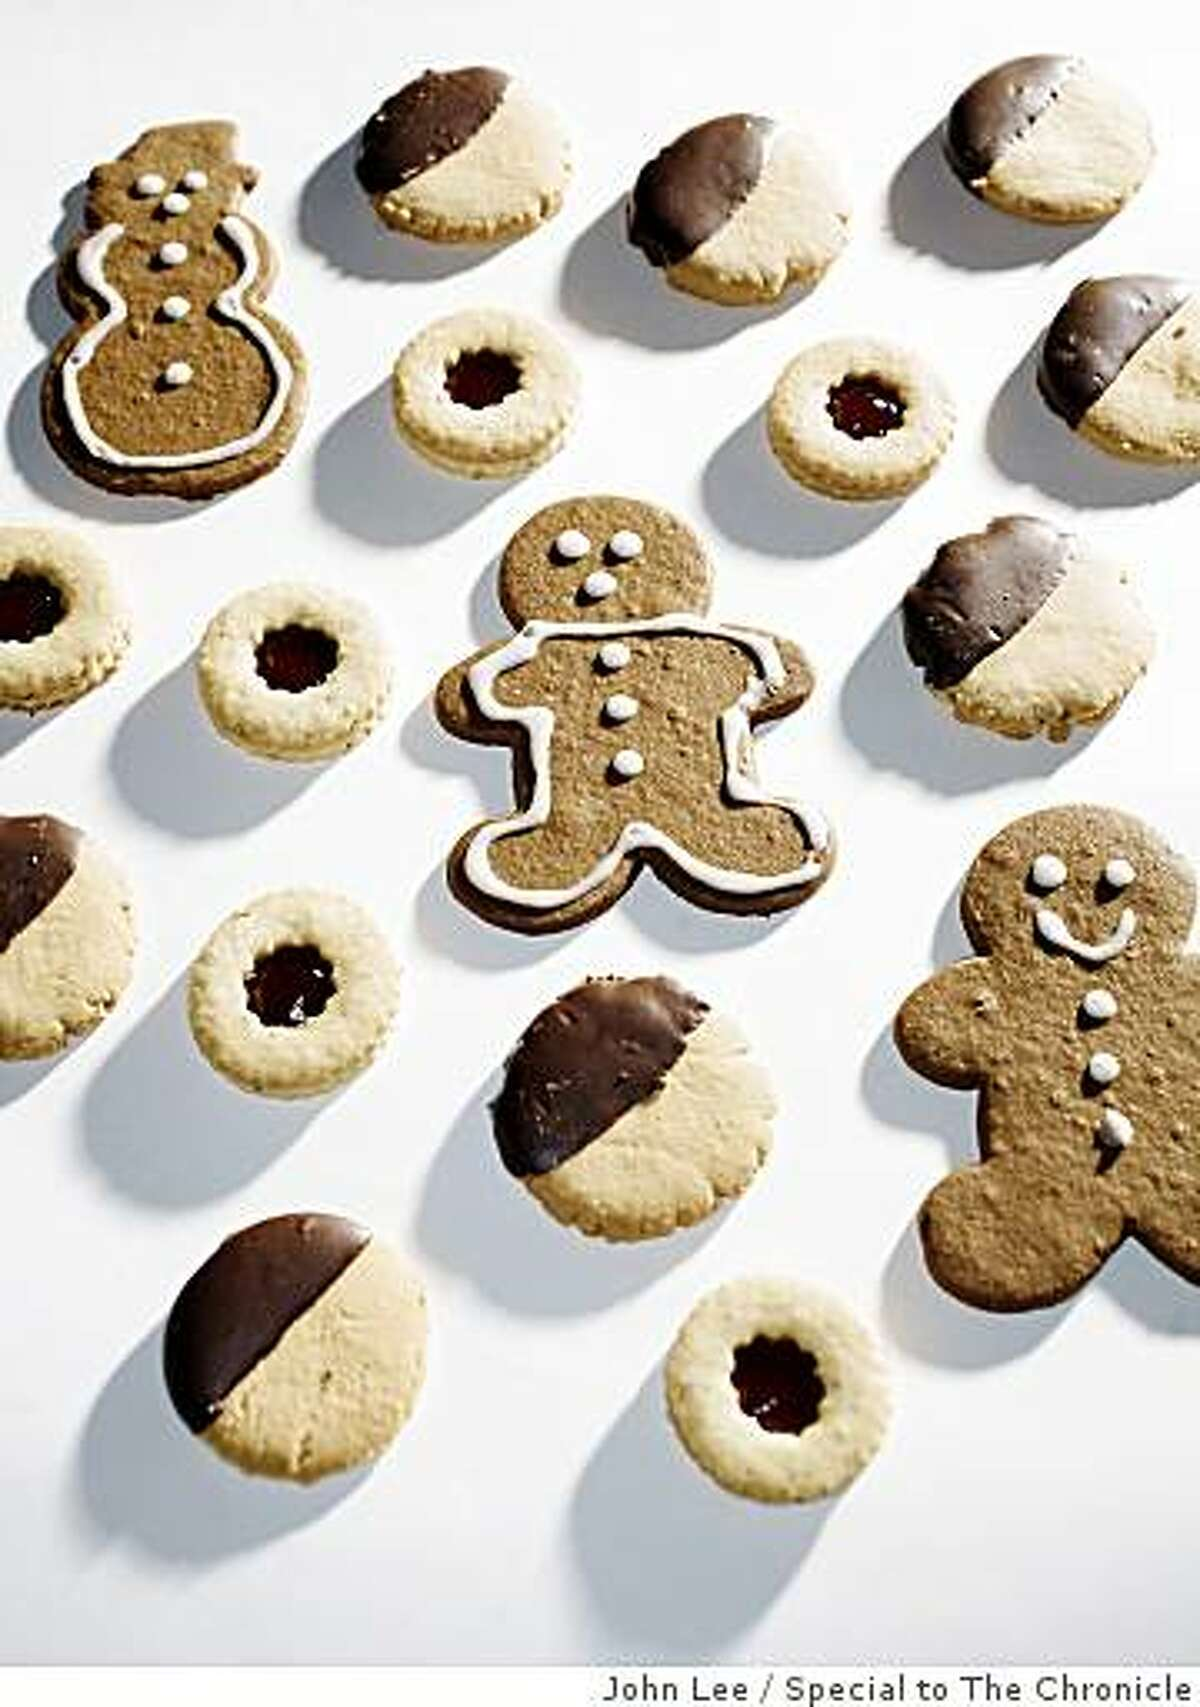 COOKIE10_02_JOHNLEE.JPG Chocolate covered peanut cookies and gingerbread cookies. By JOHN LEE/SPECIAL TO THE CHRONICLE